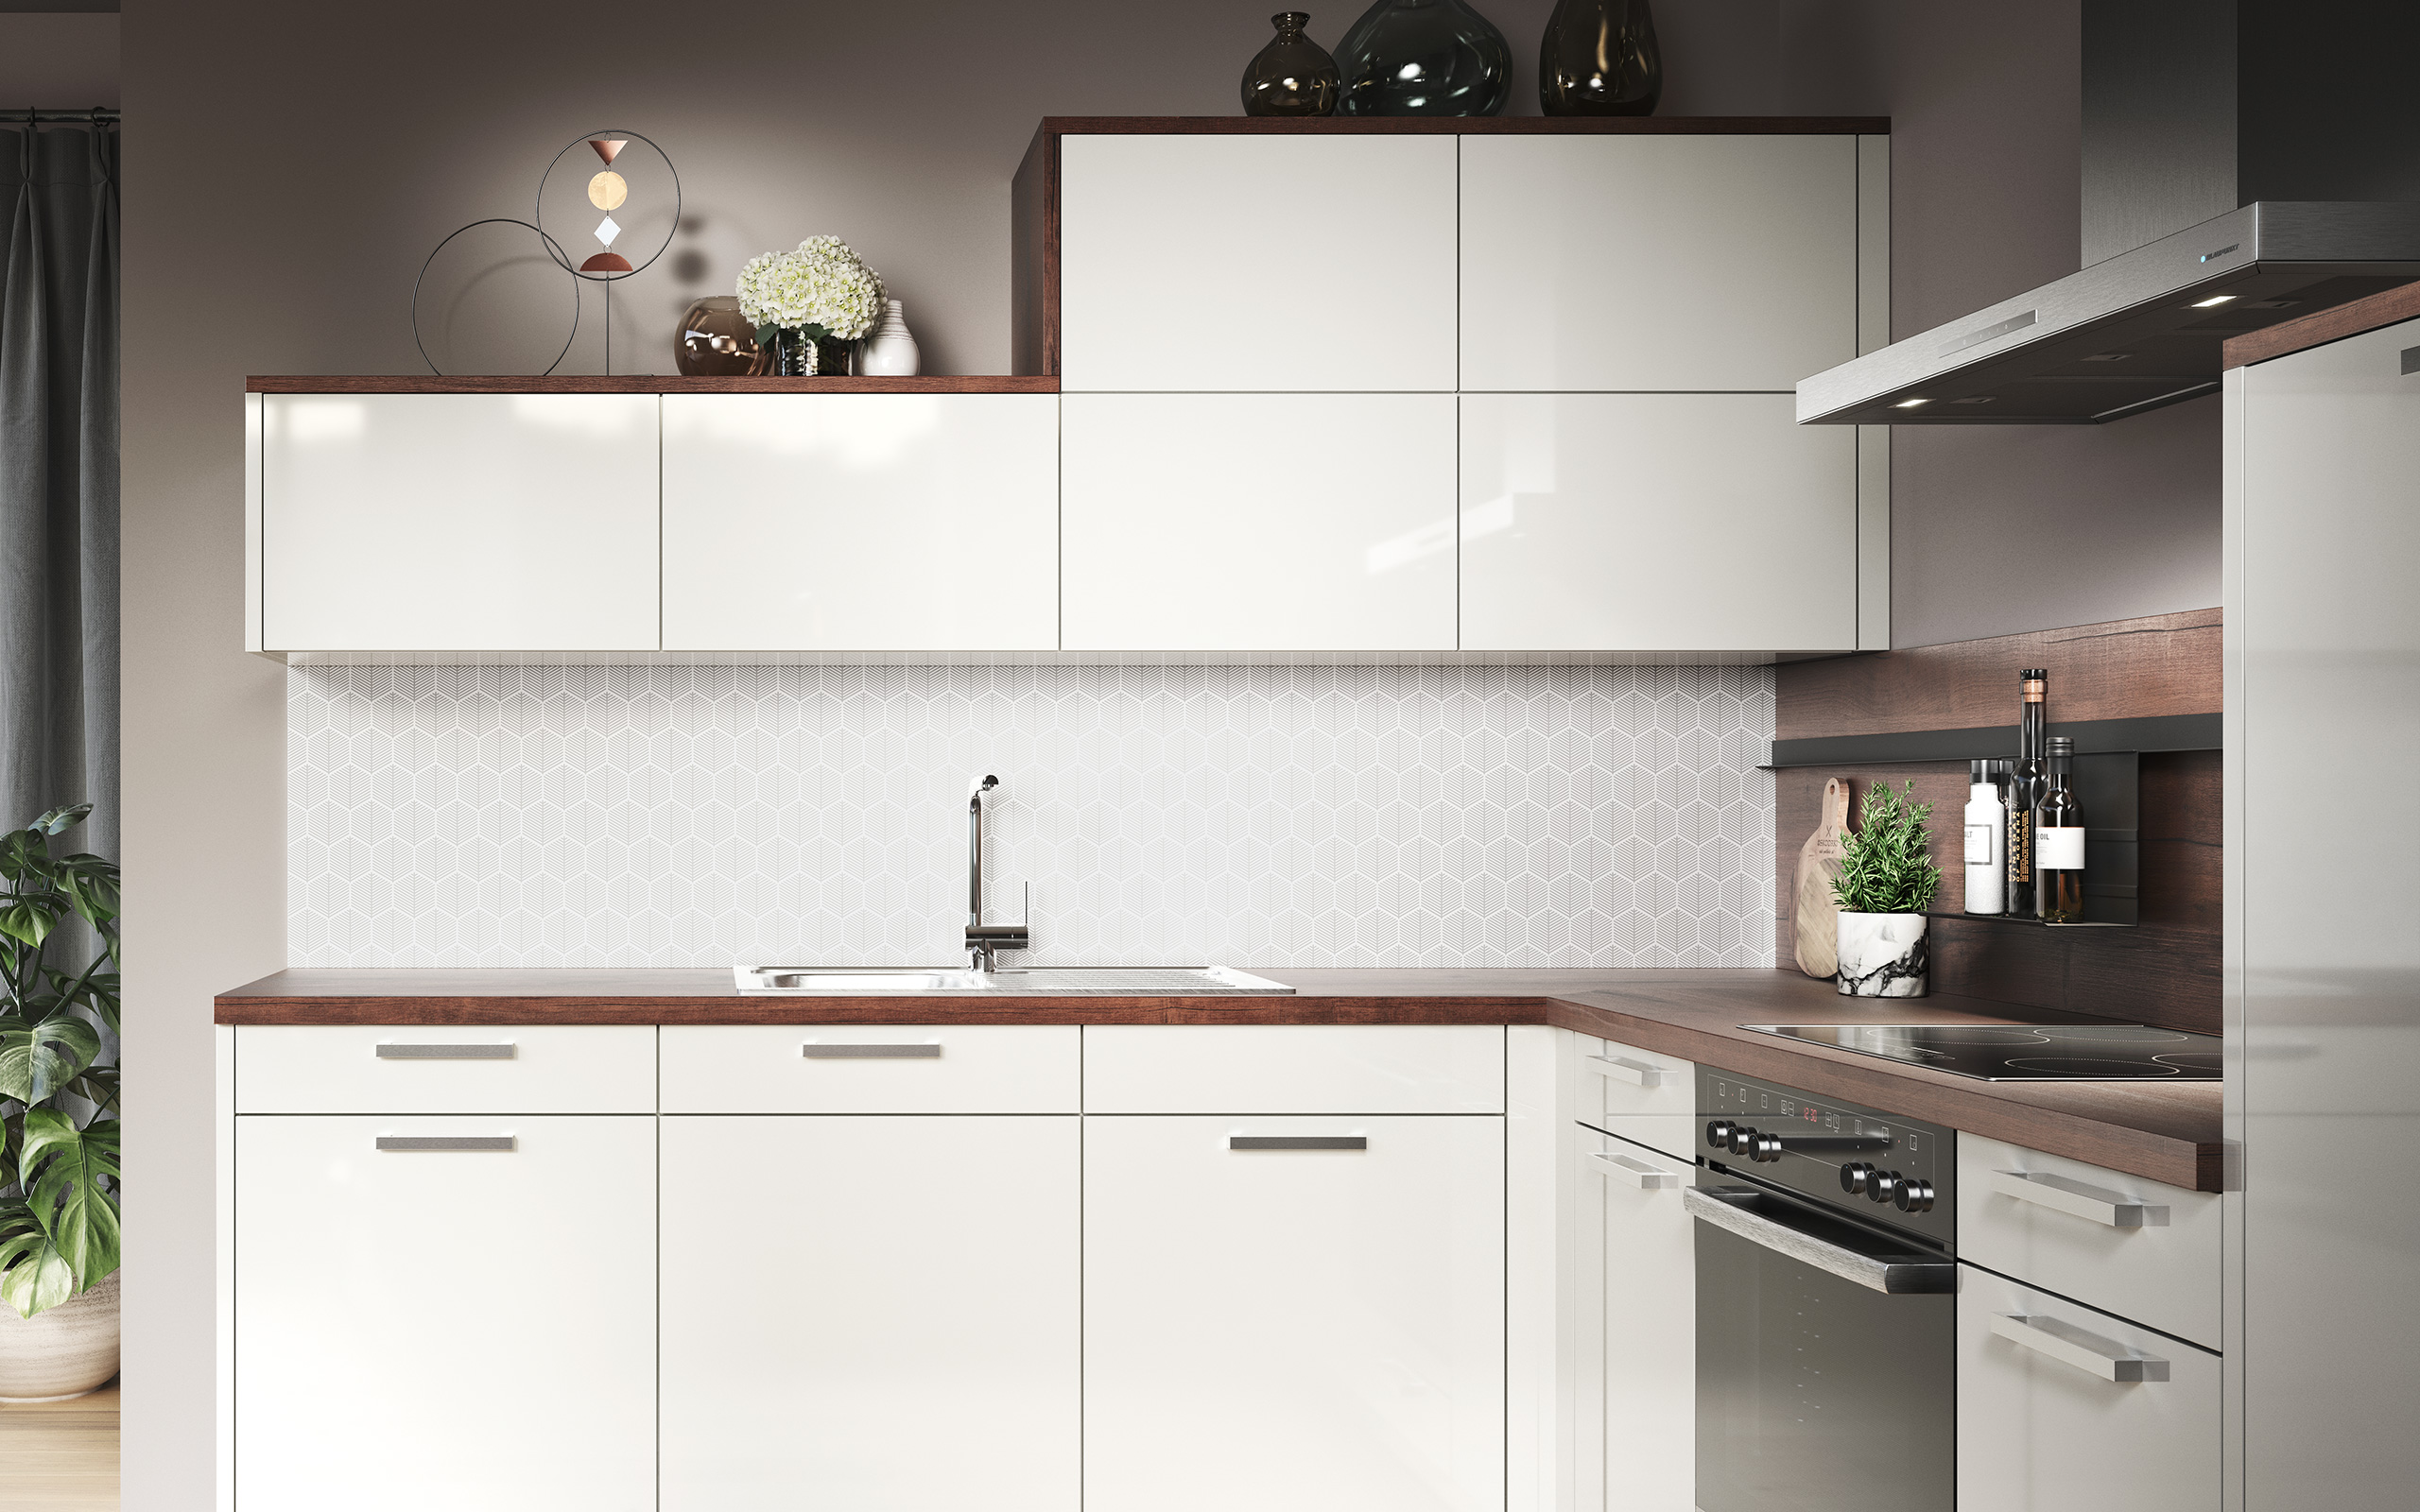 Backsplash panel lava grey